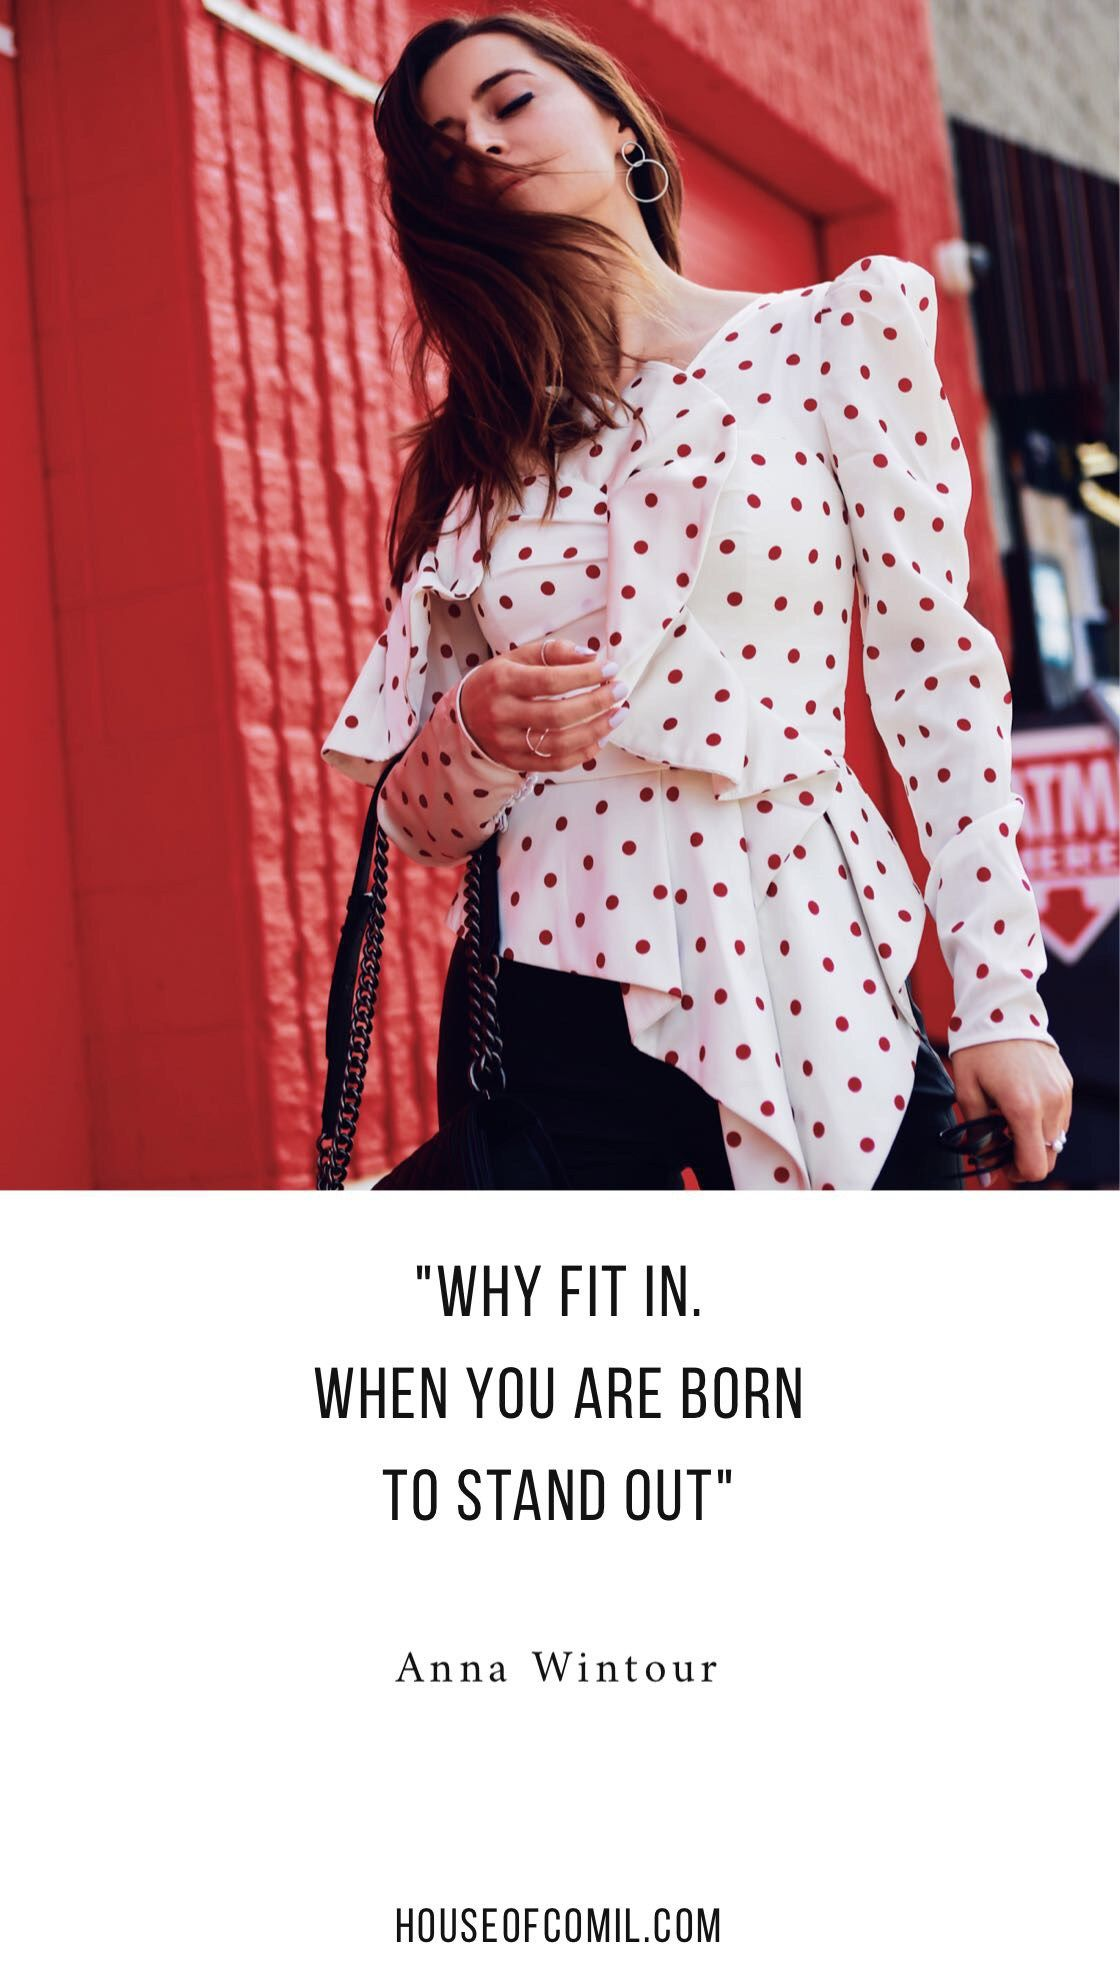 Best Style Quotes To Live By Fashion Designer Quotes Fashion Quotes Fashion Quotes Inspirational